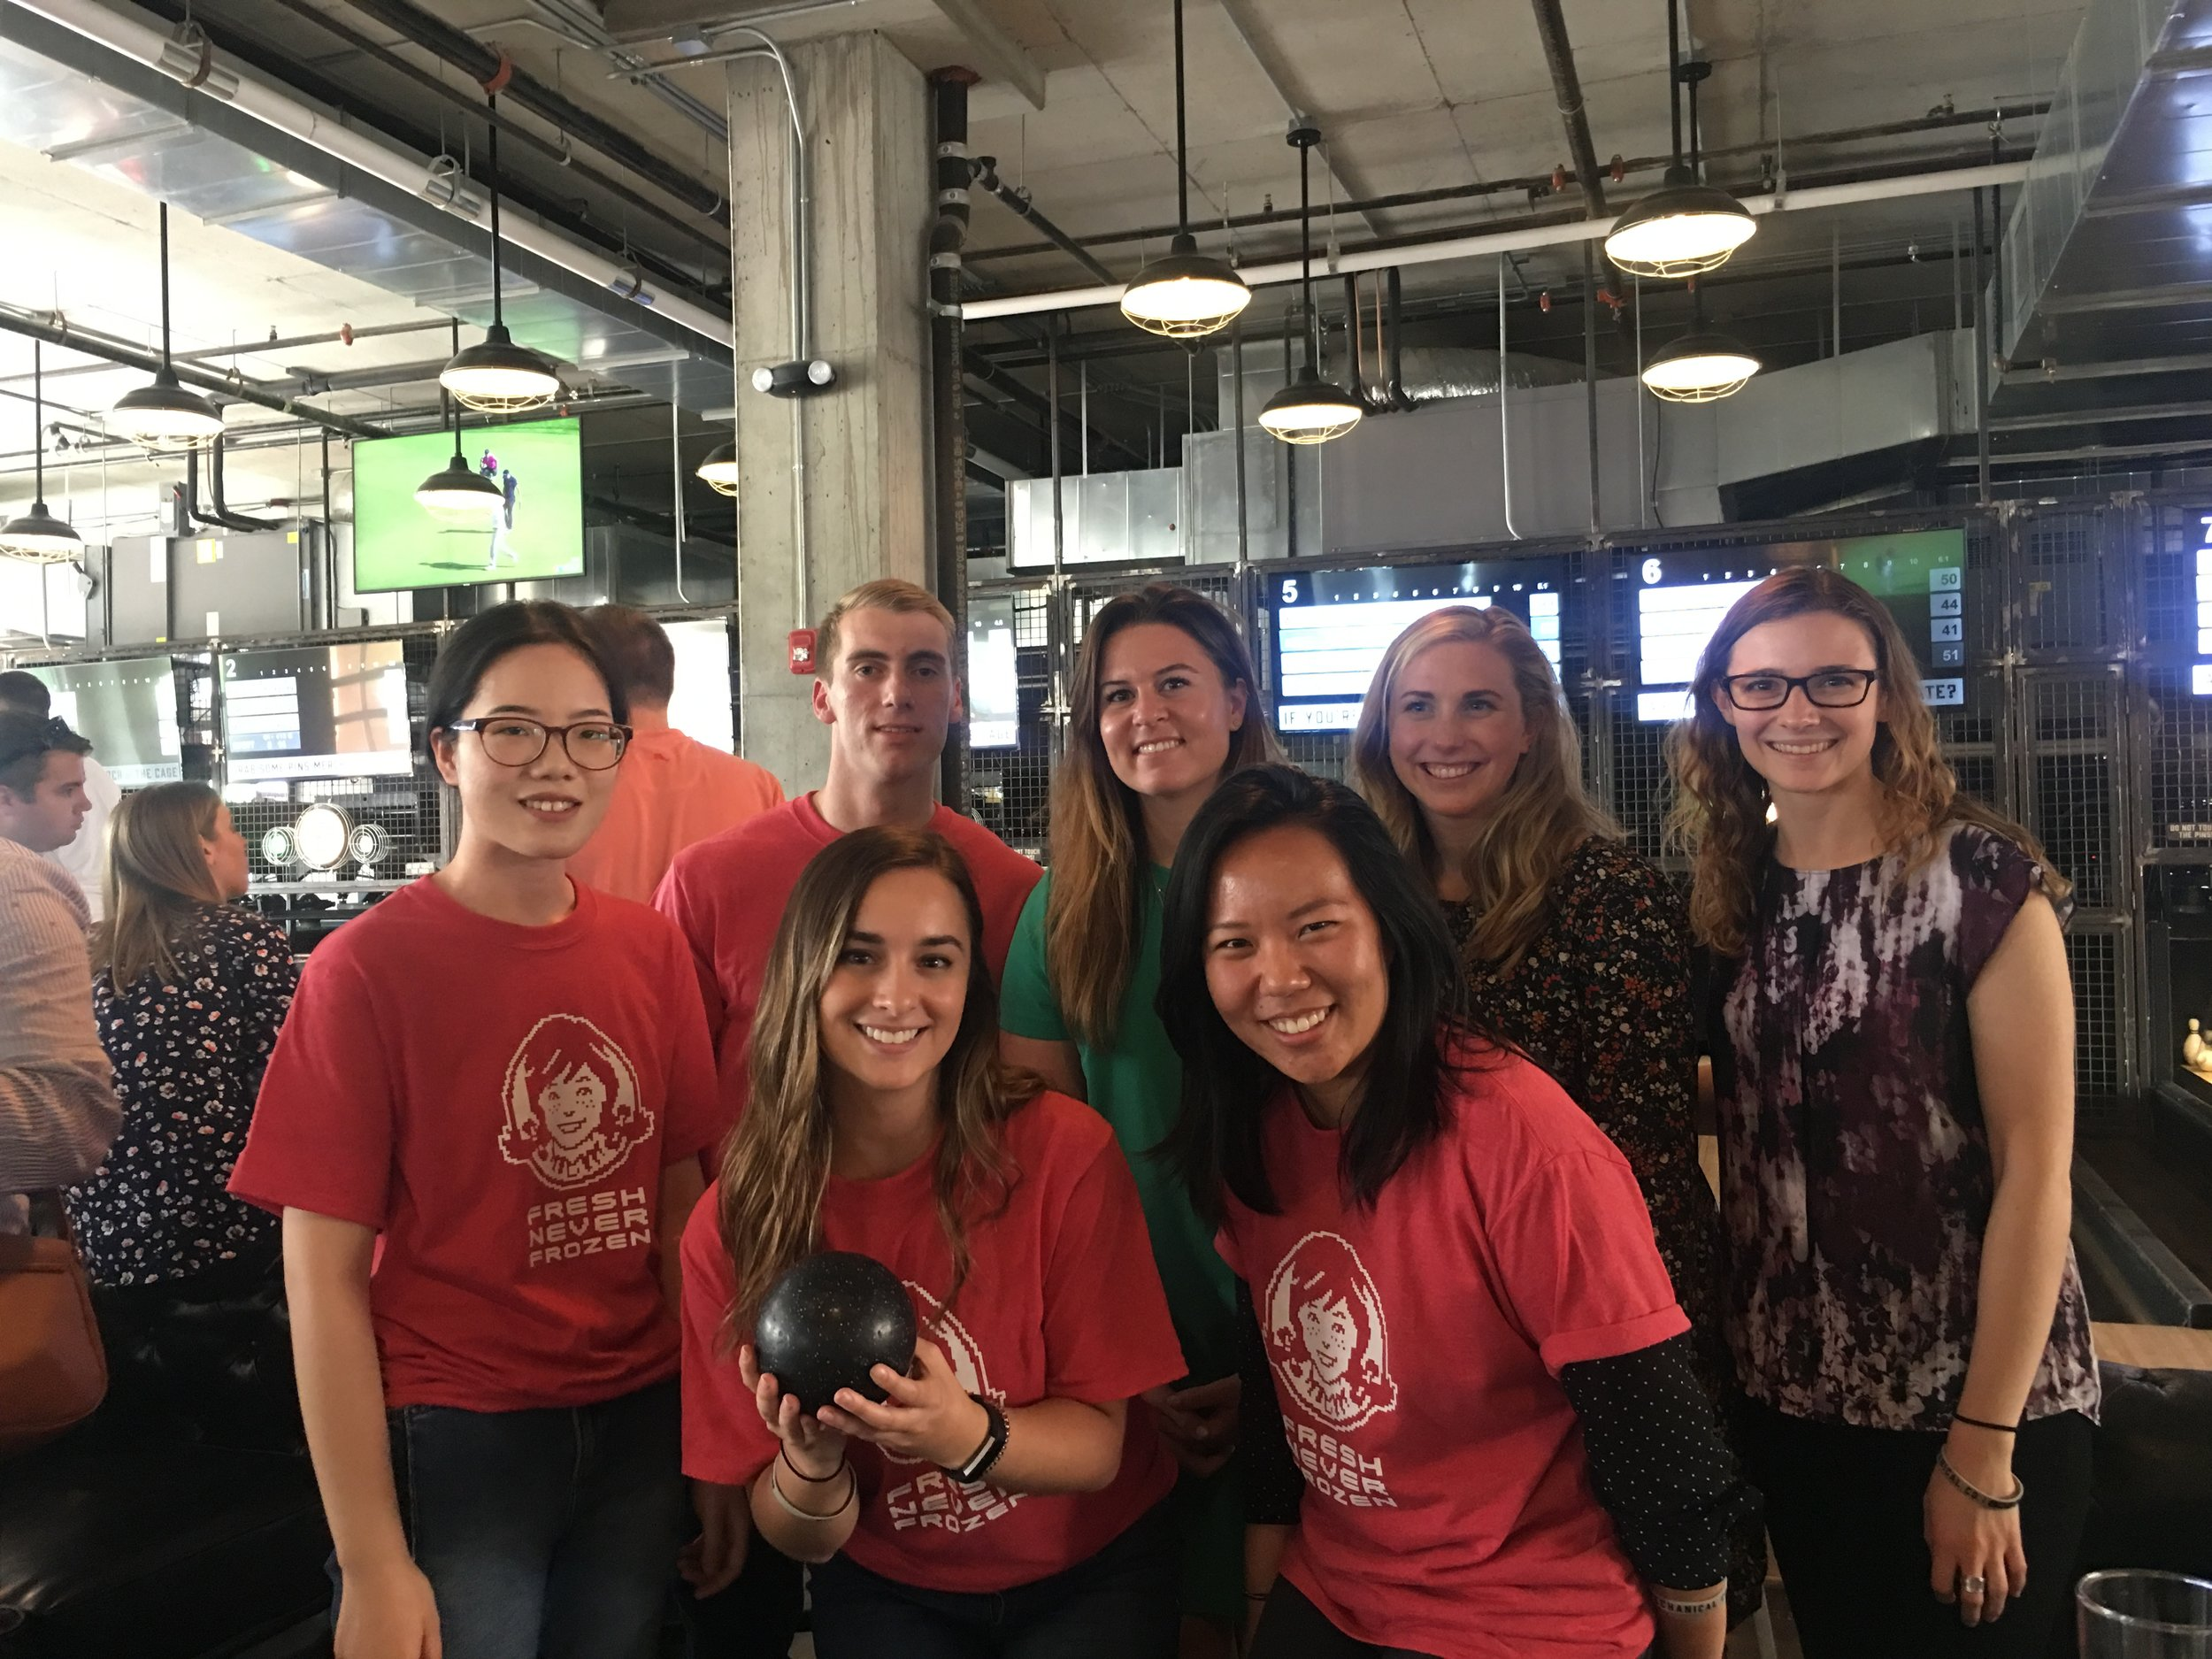 But it wasn't all work! The Wendy's Intern Class of 2019 found time to have hangout together outside of work and have a little fun at the bowling alley.